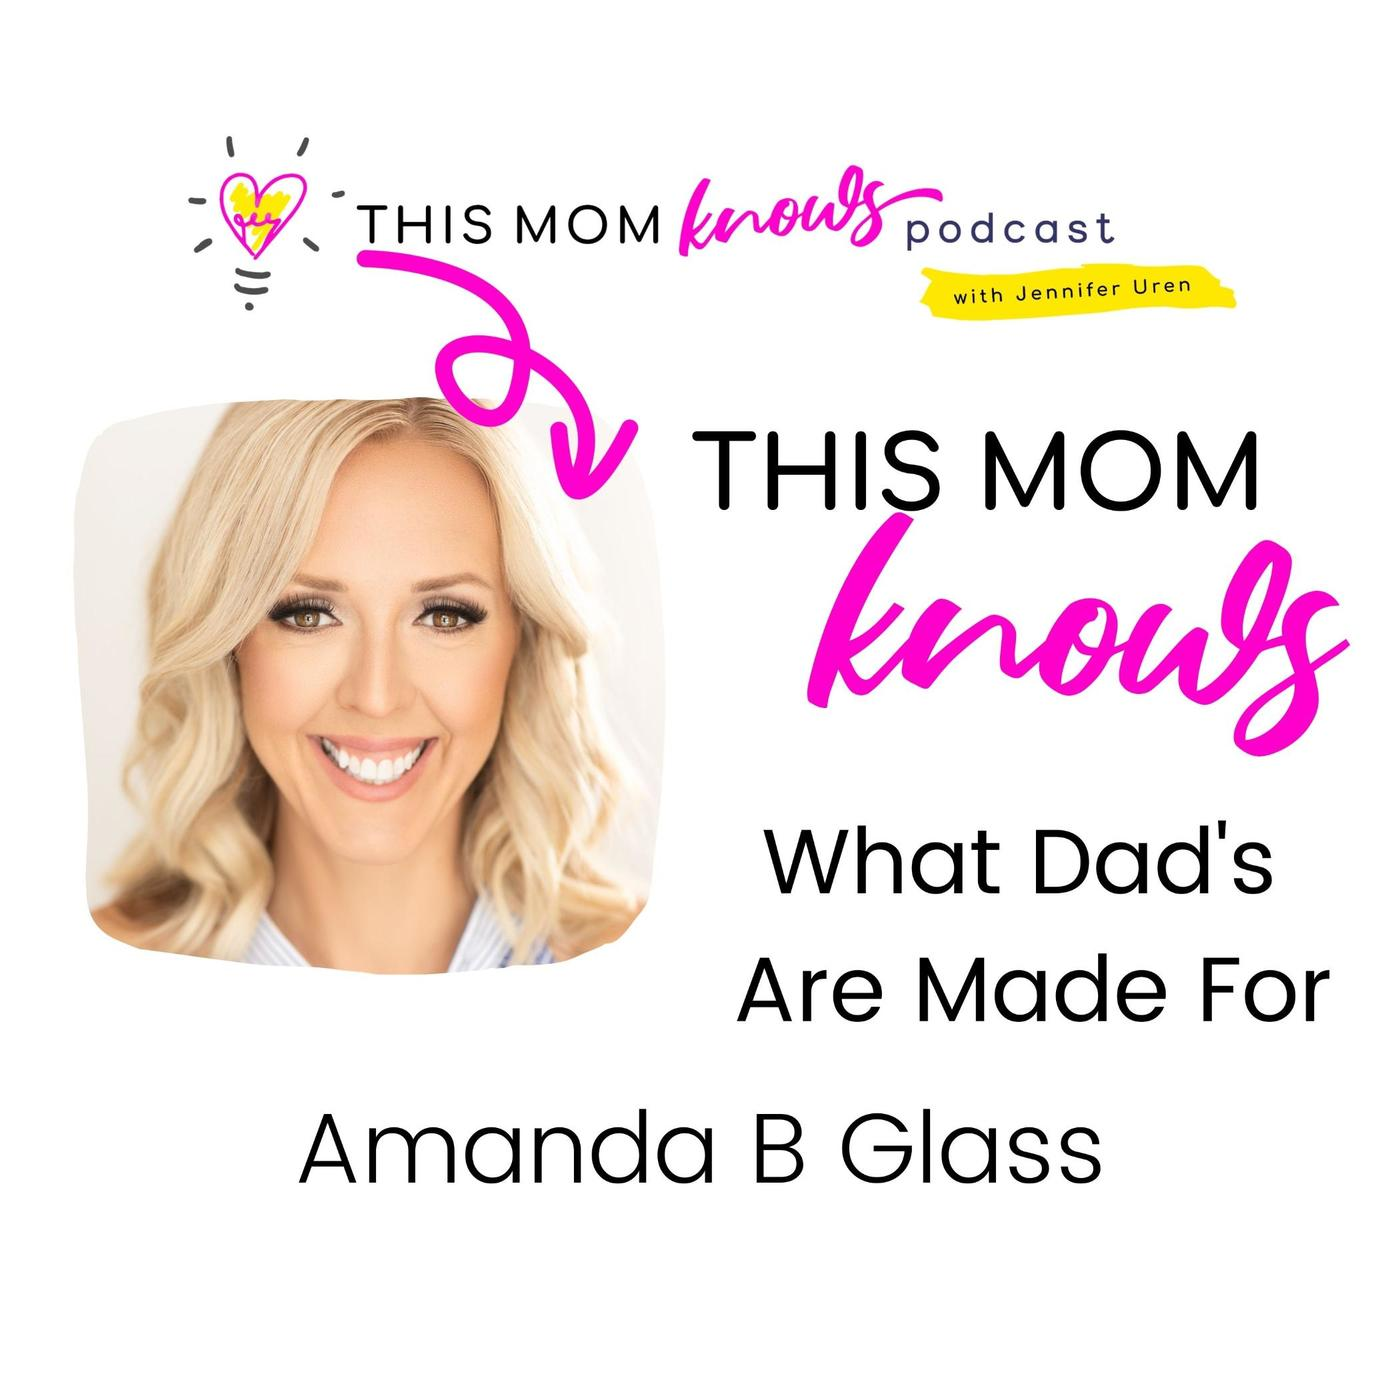 Amanda B Glass on What Dad's Are Made For